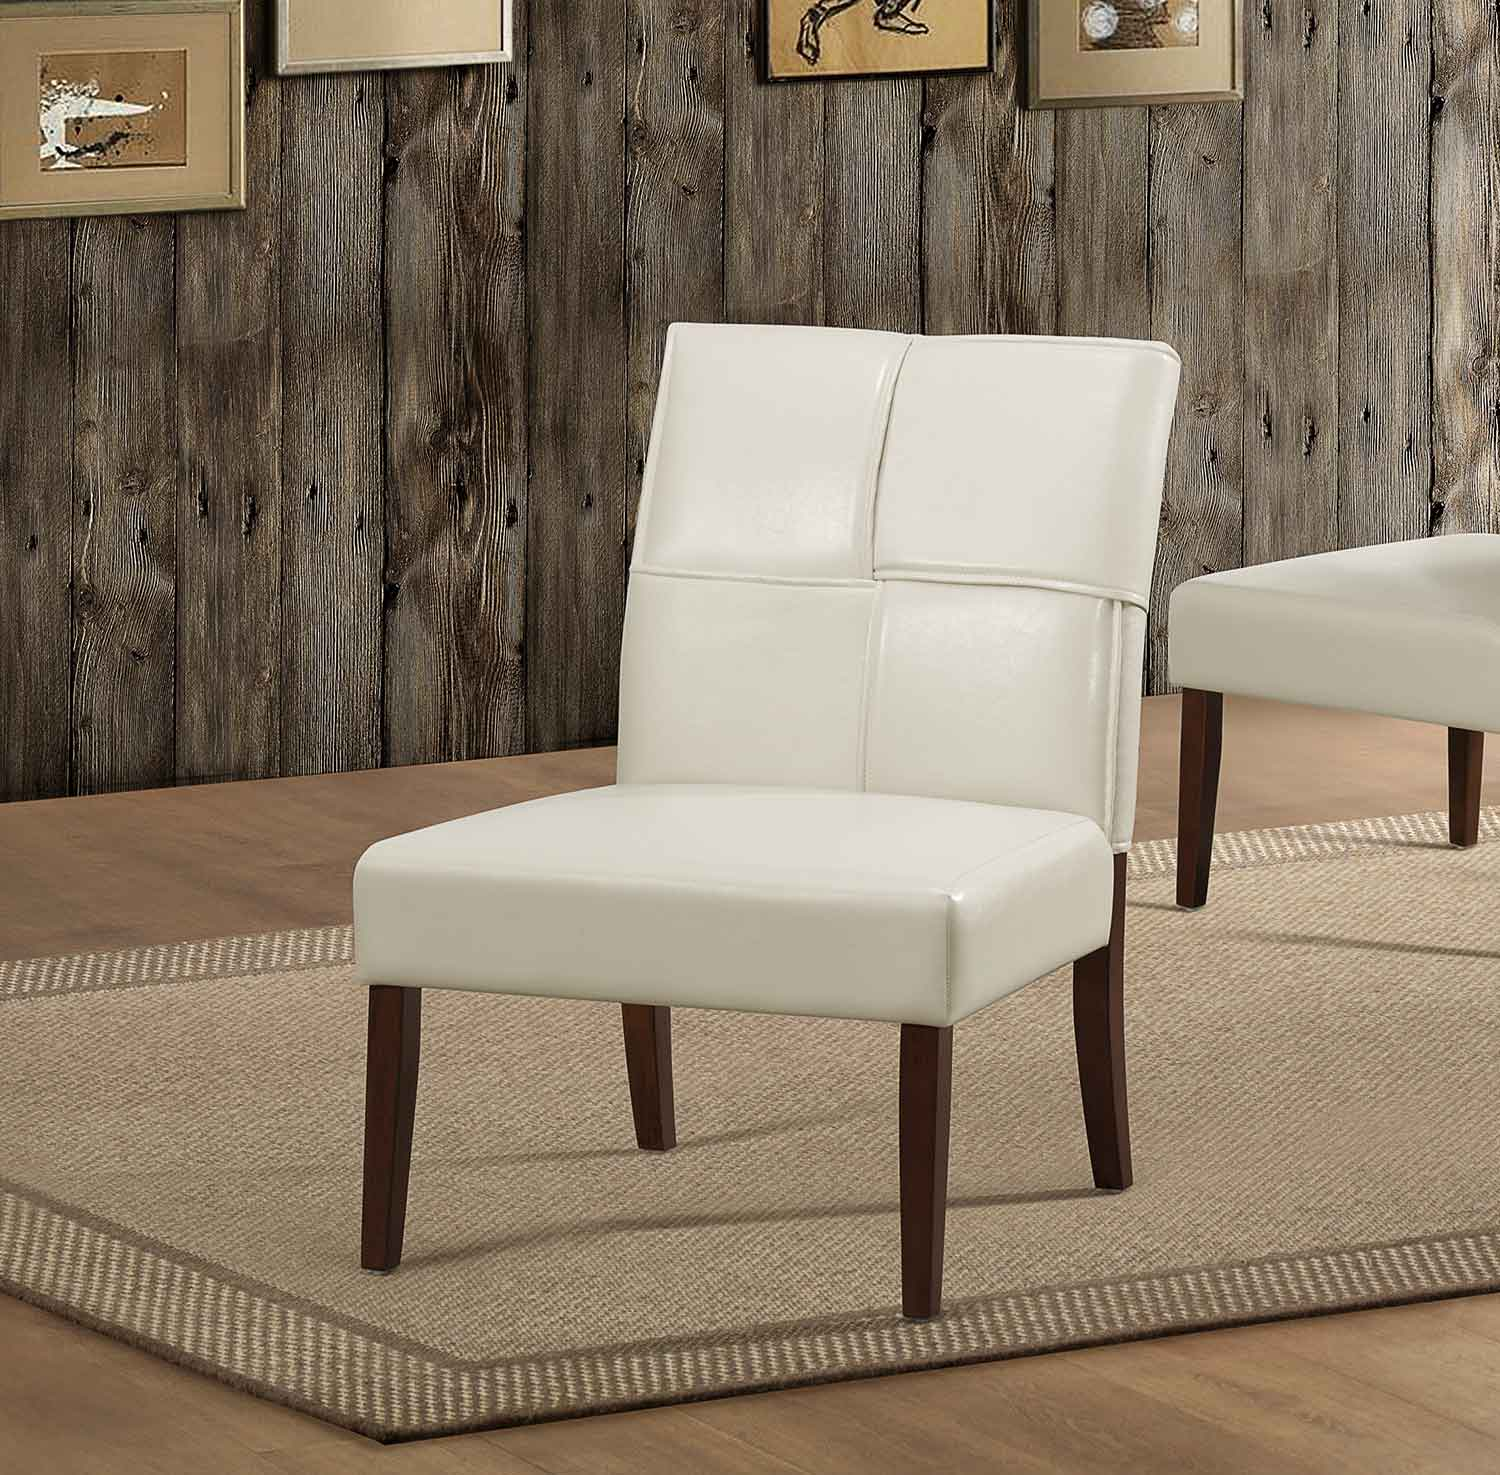 Cream Accent Chair Homelegance Oriana Accent Chair Cream 1215crs At